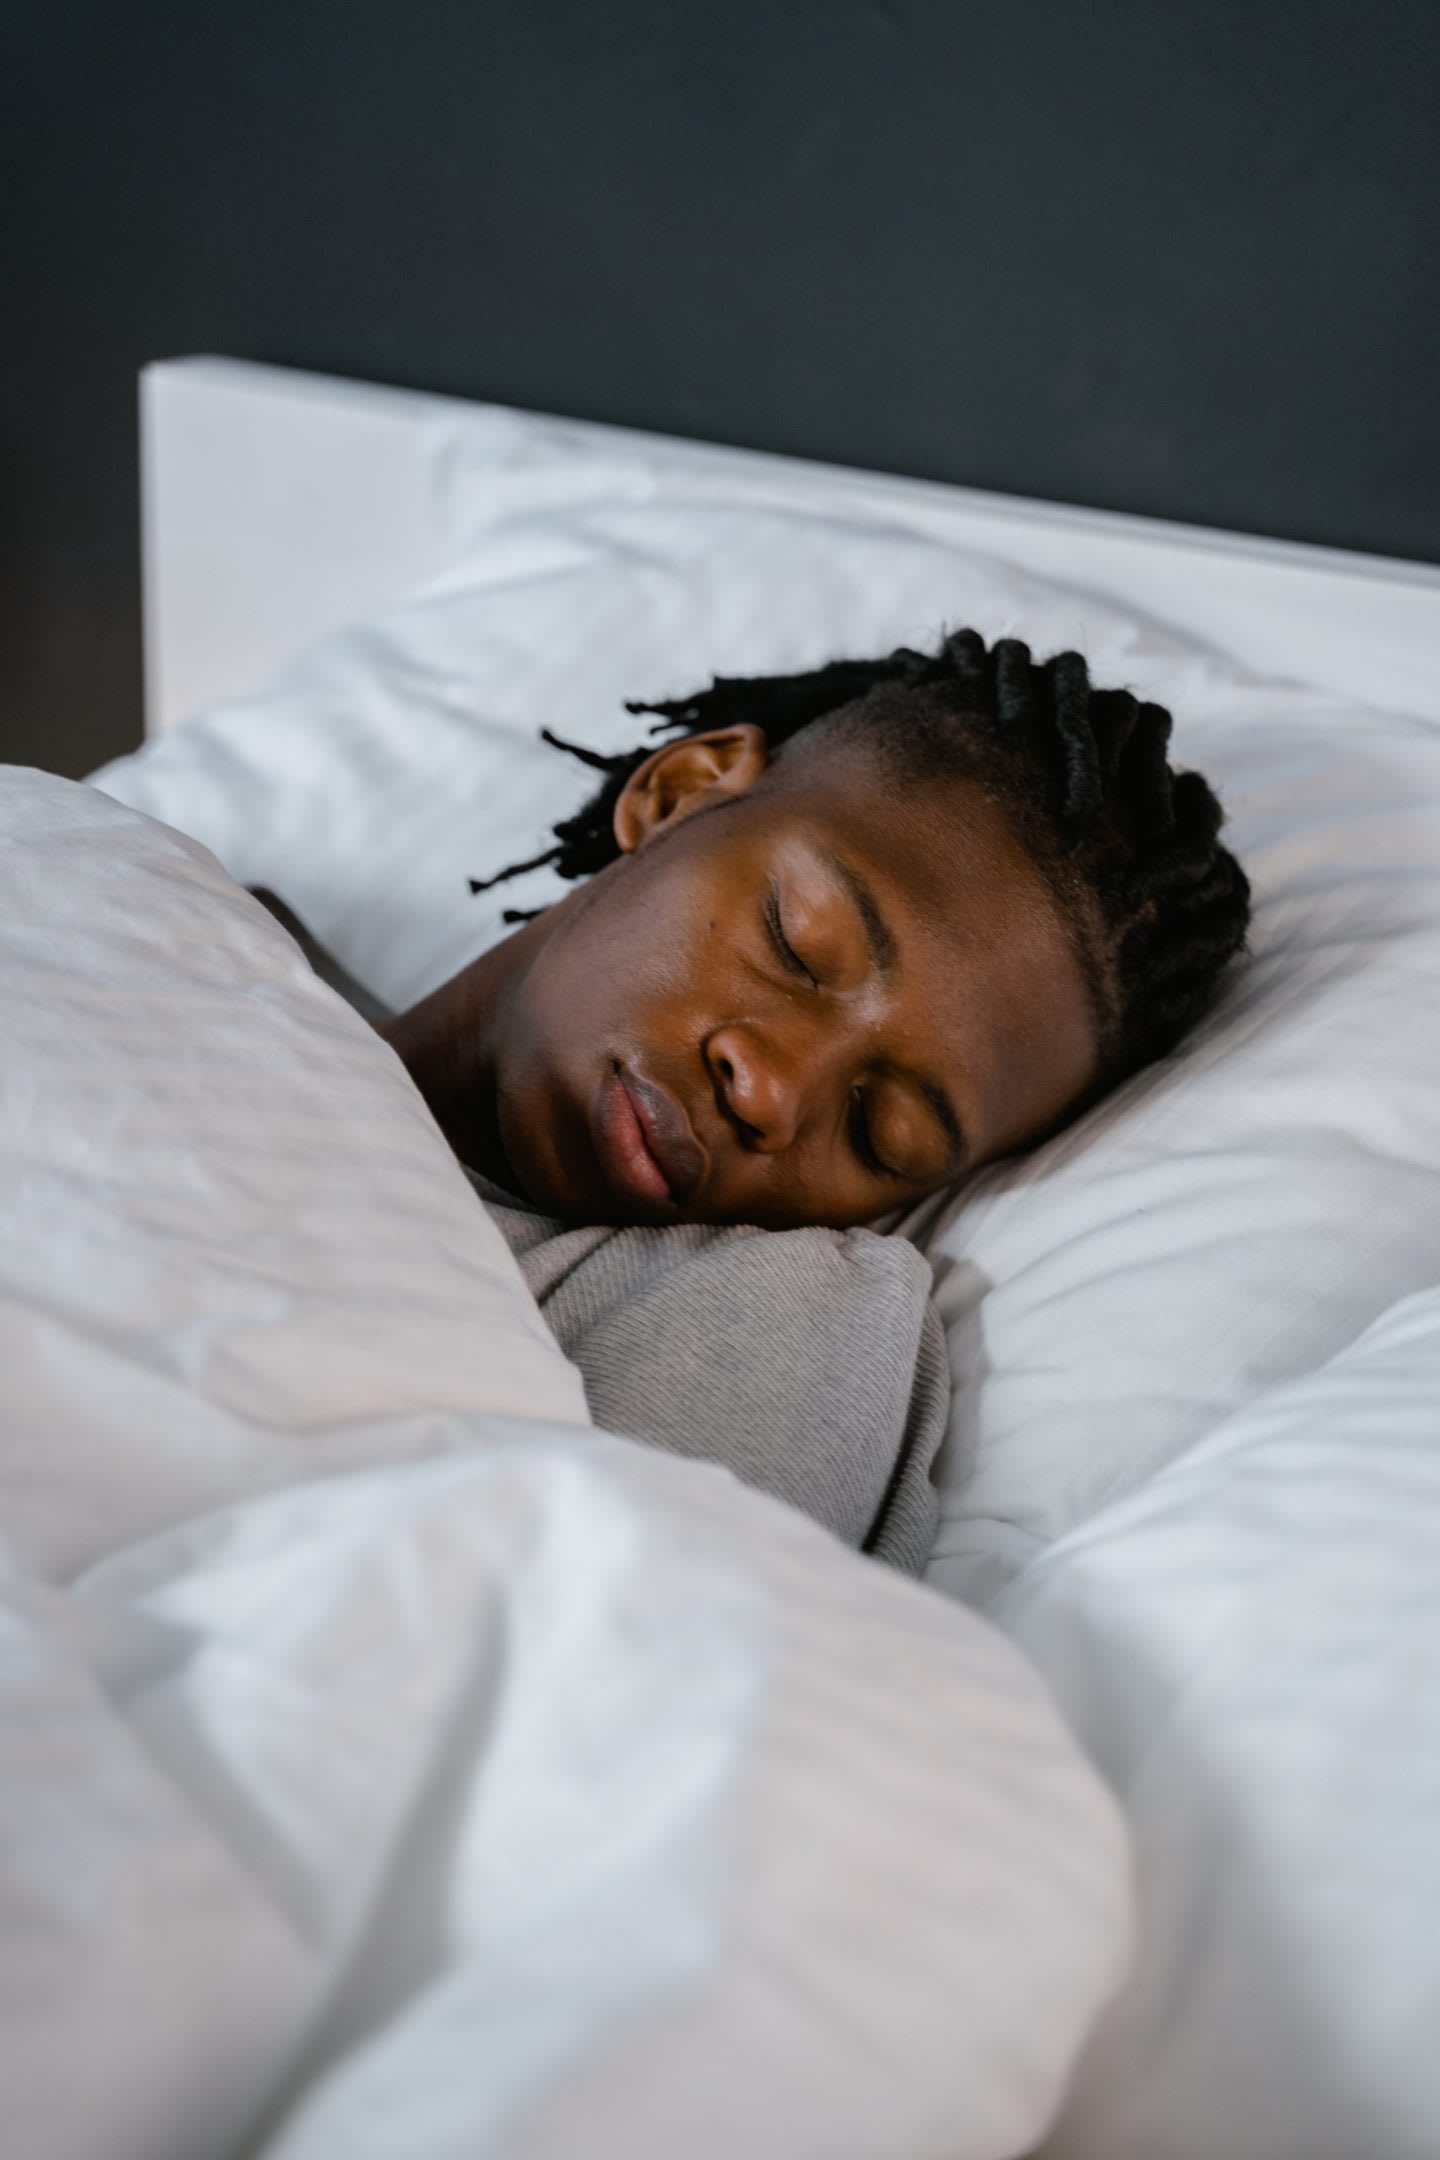 Man sleeping in a bed with white bedsheets, sleep, recovery, rest, comfortable, bed